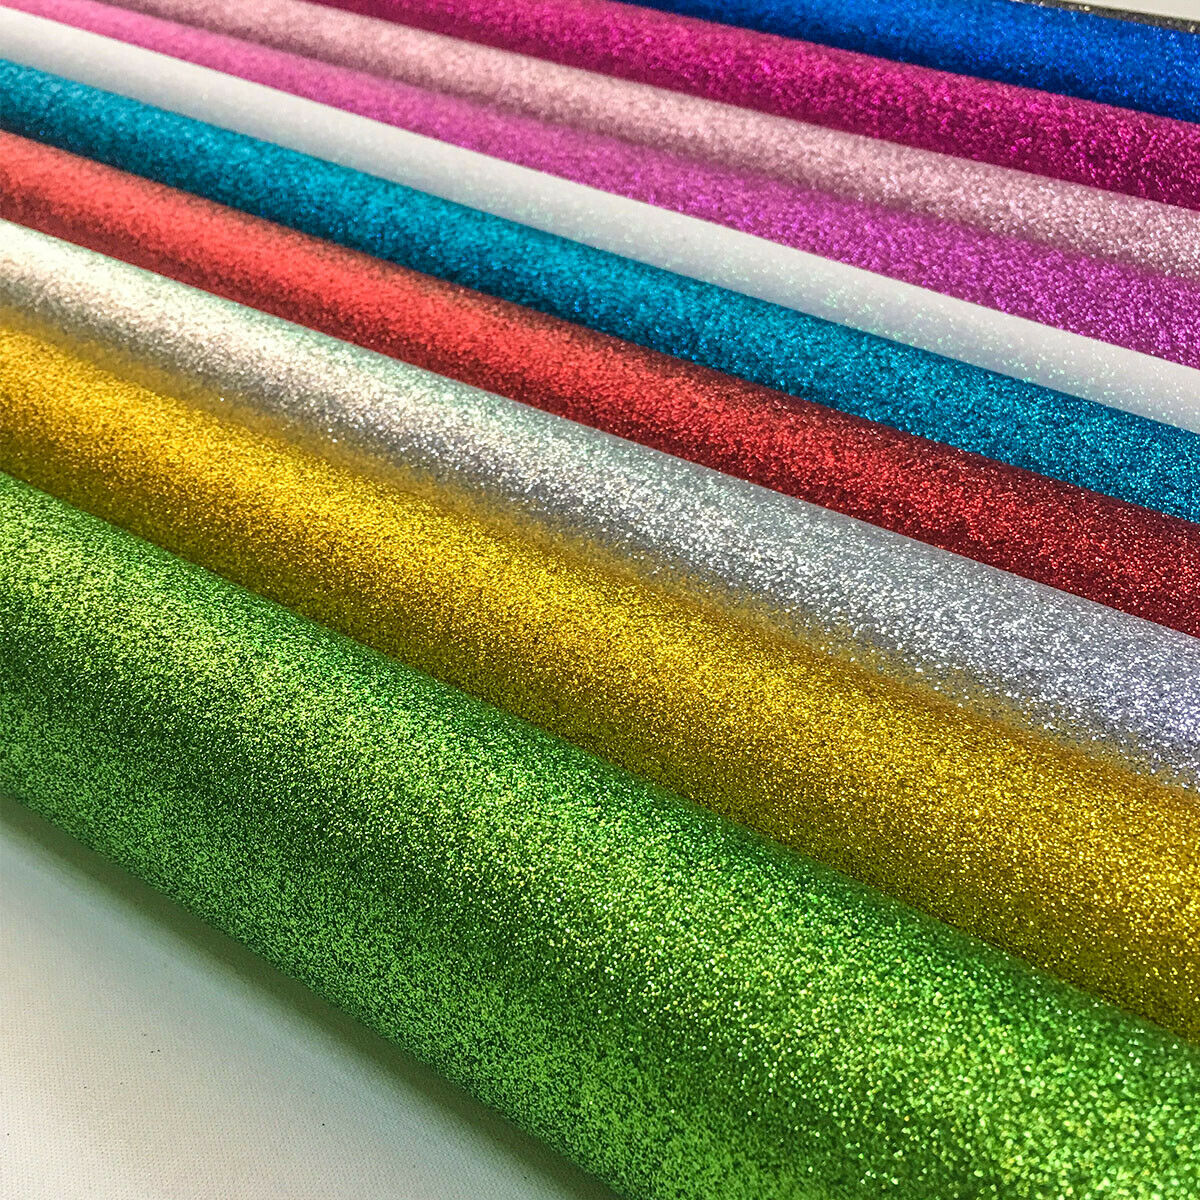 Rainbow Vinyl Glitter Fabric A4 Or A5 Sheets Felt Backed For Bows /& Crafts